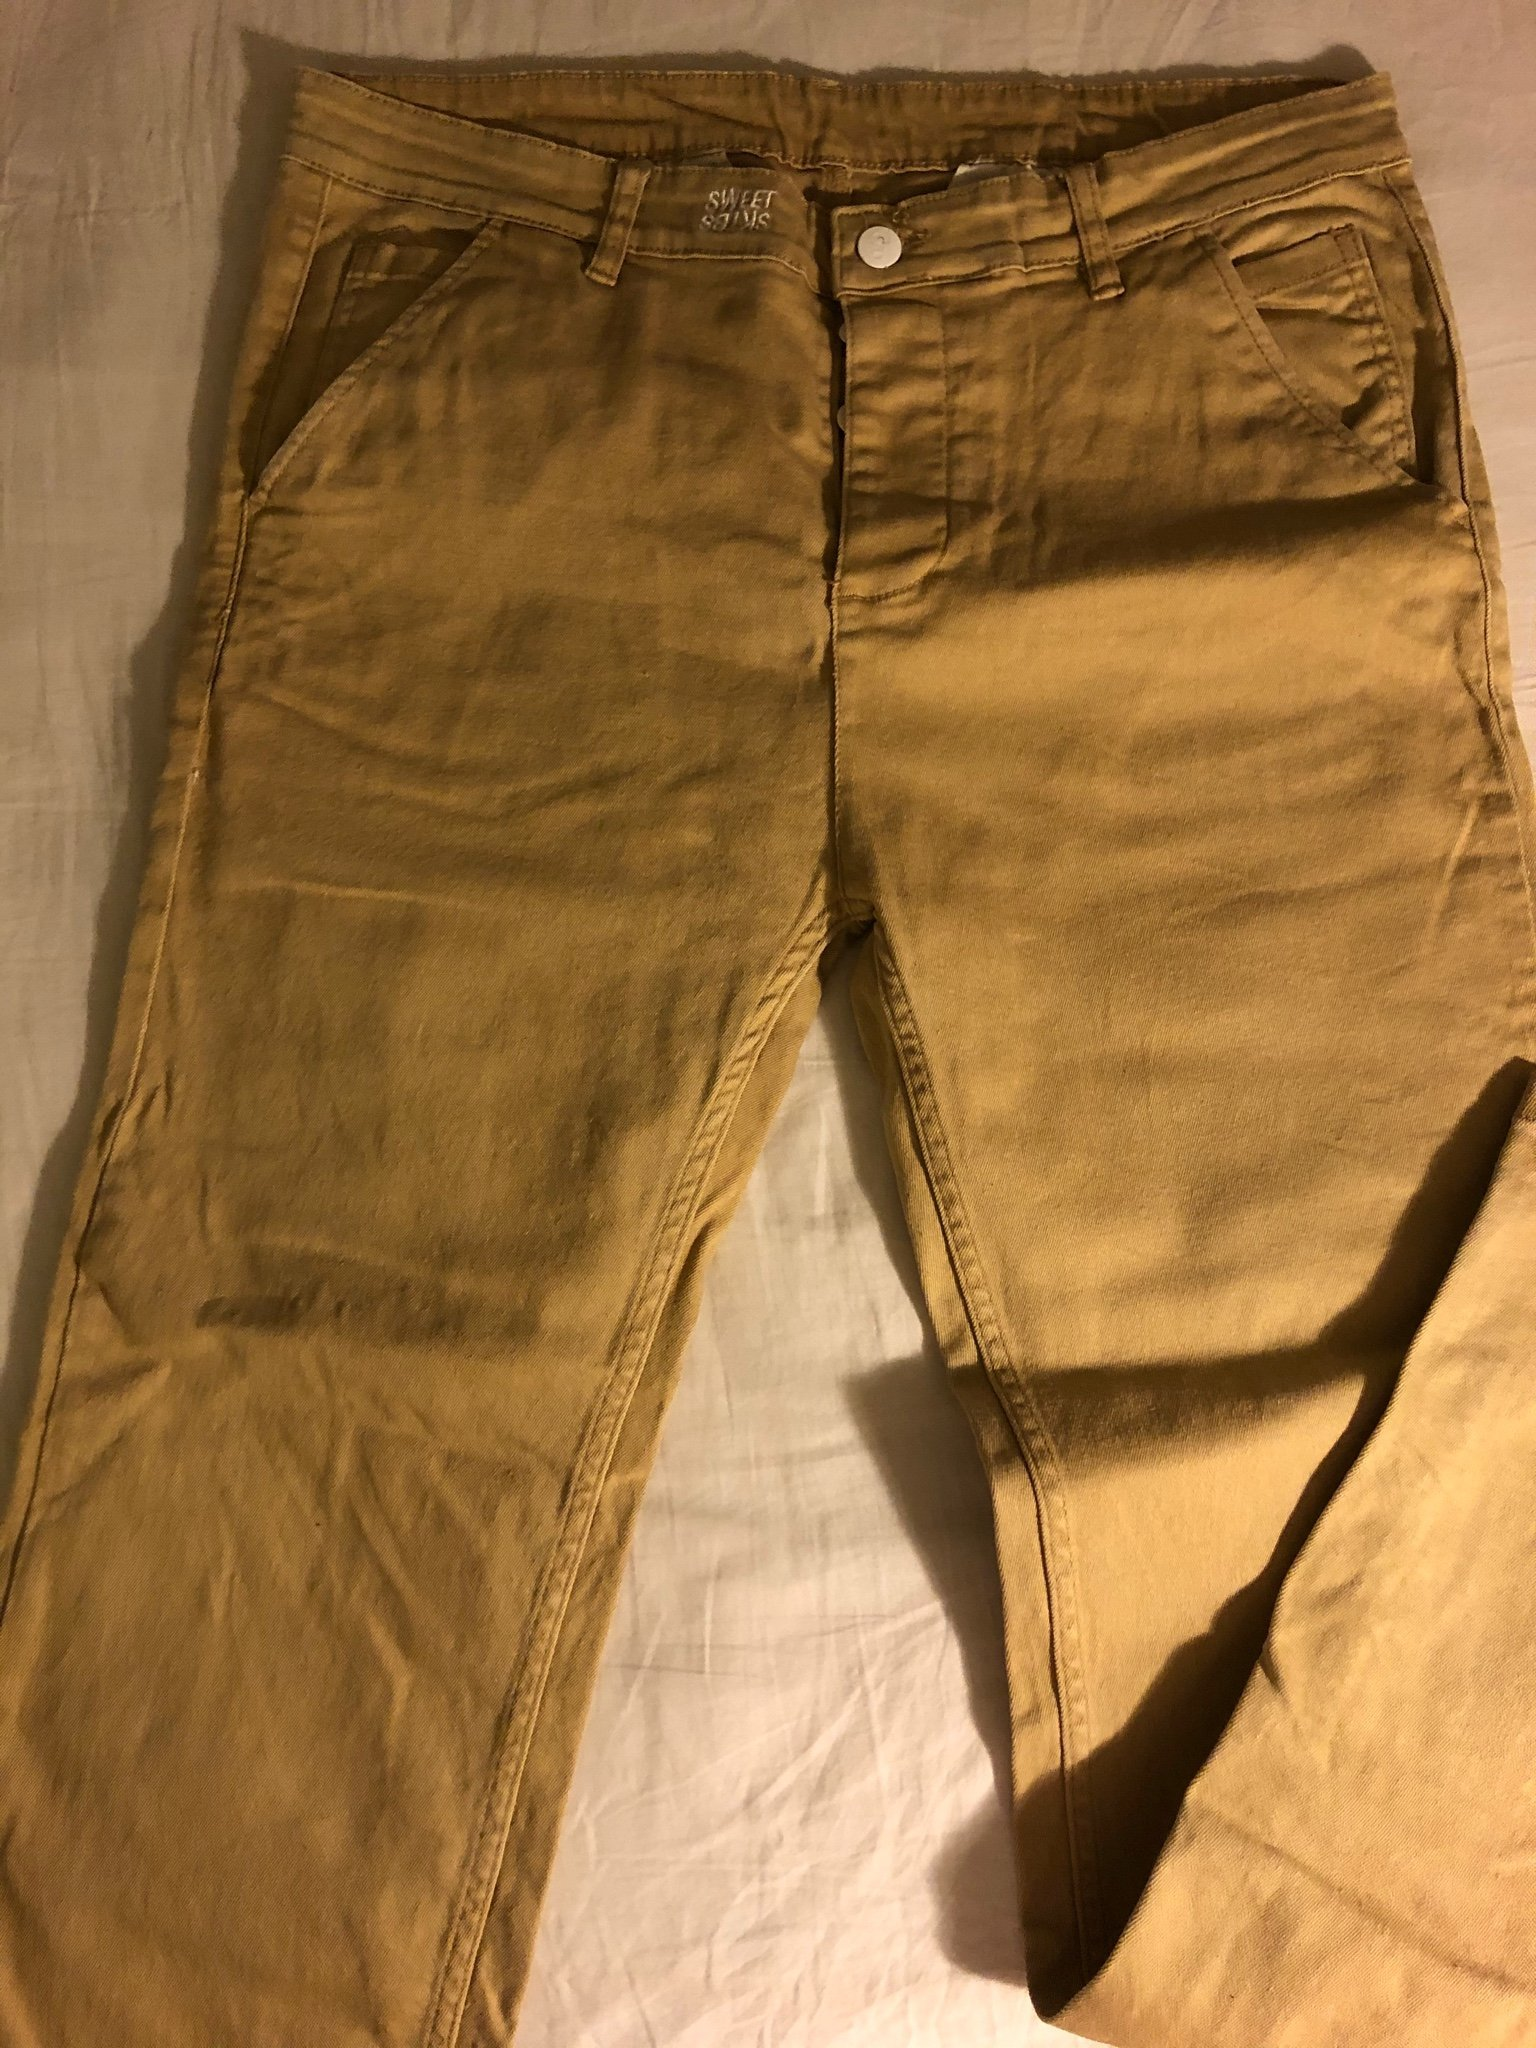 Chinos st 32/34 SWEET SKTBS